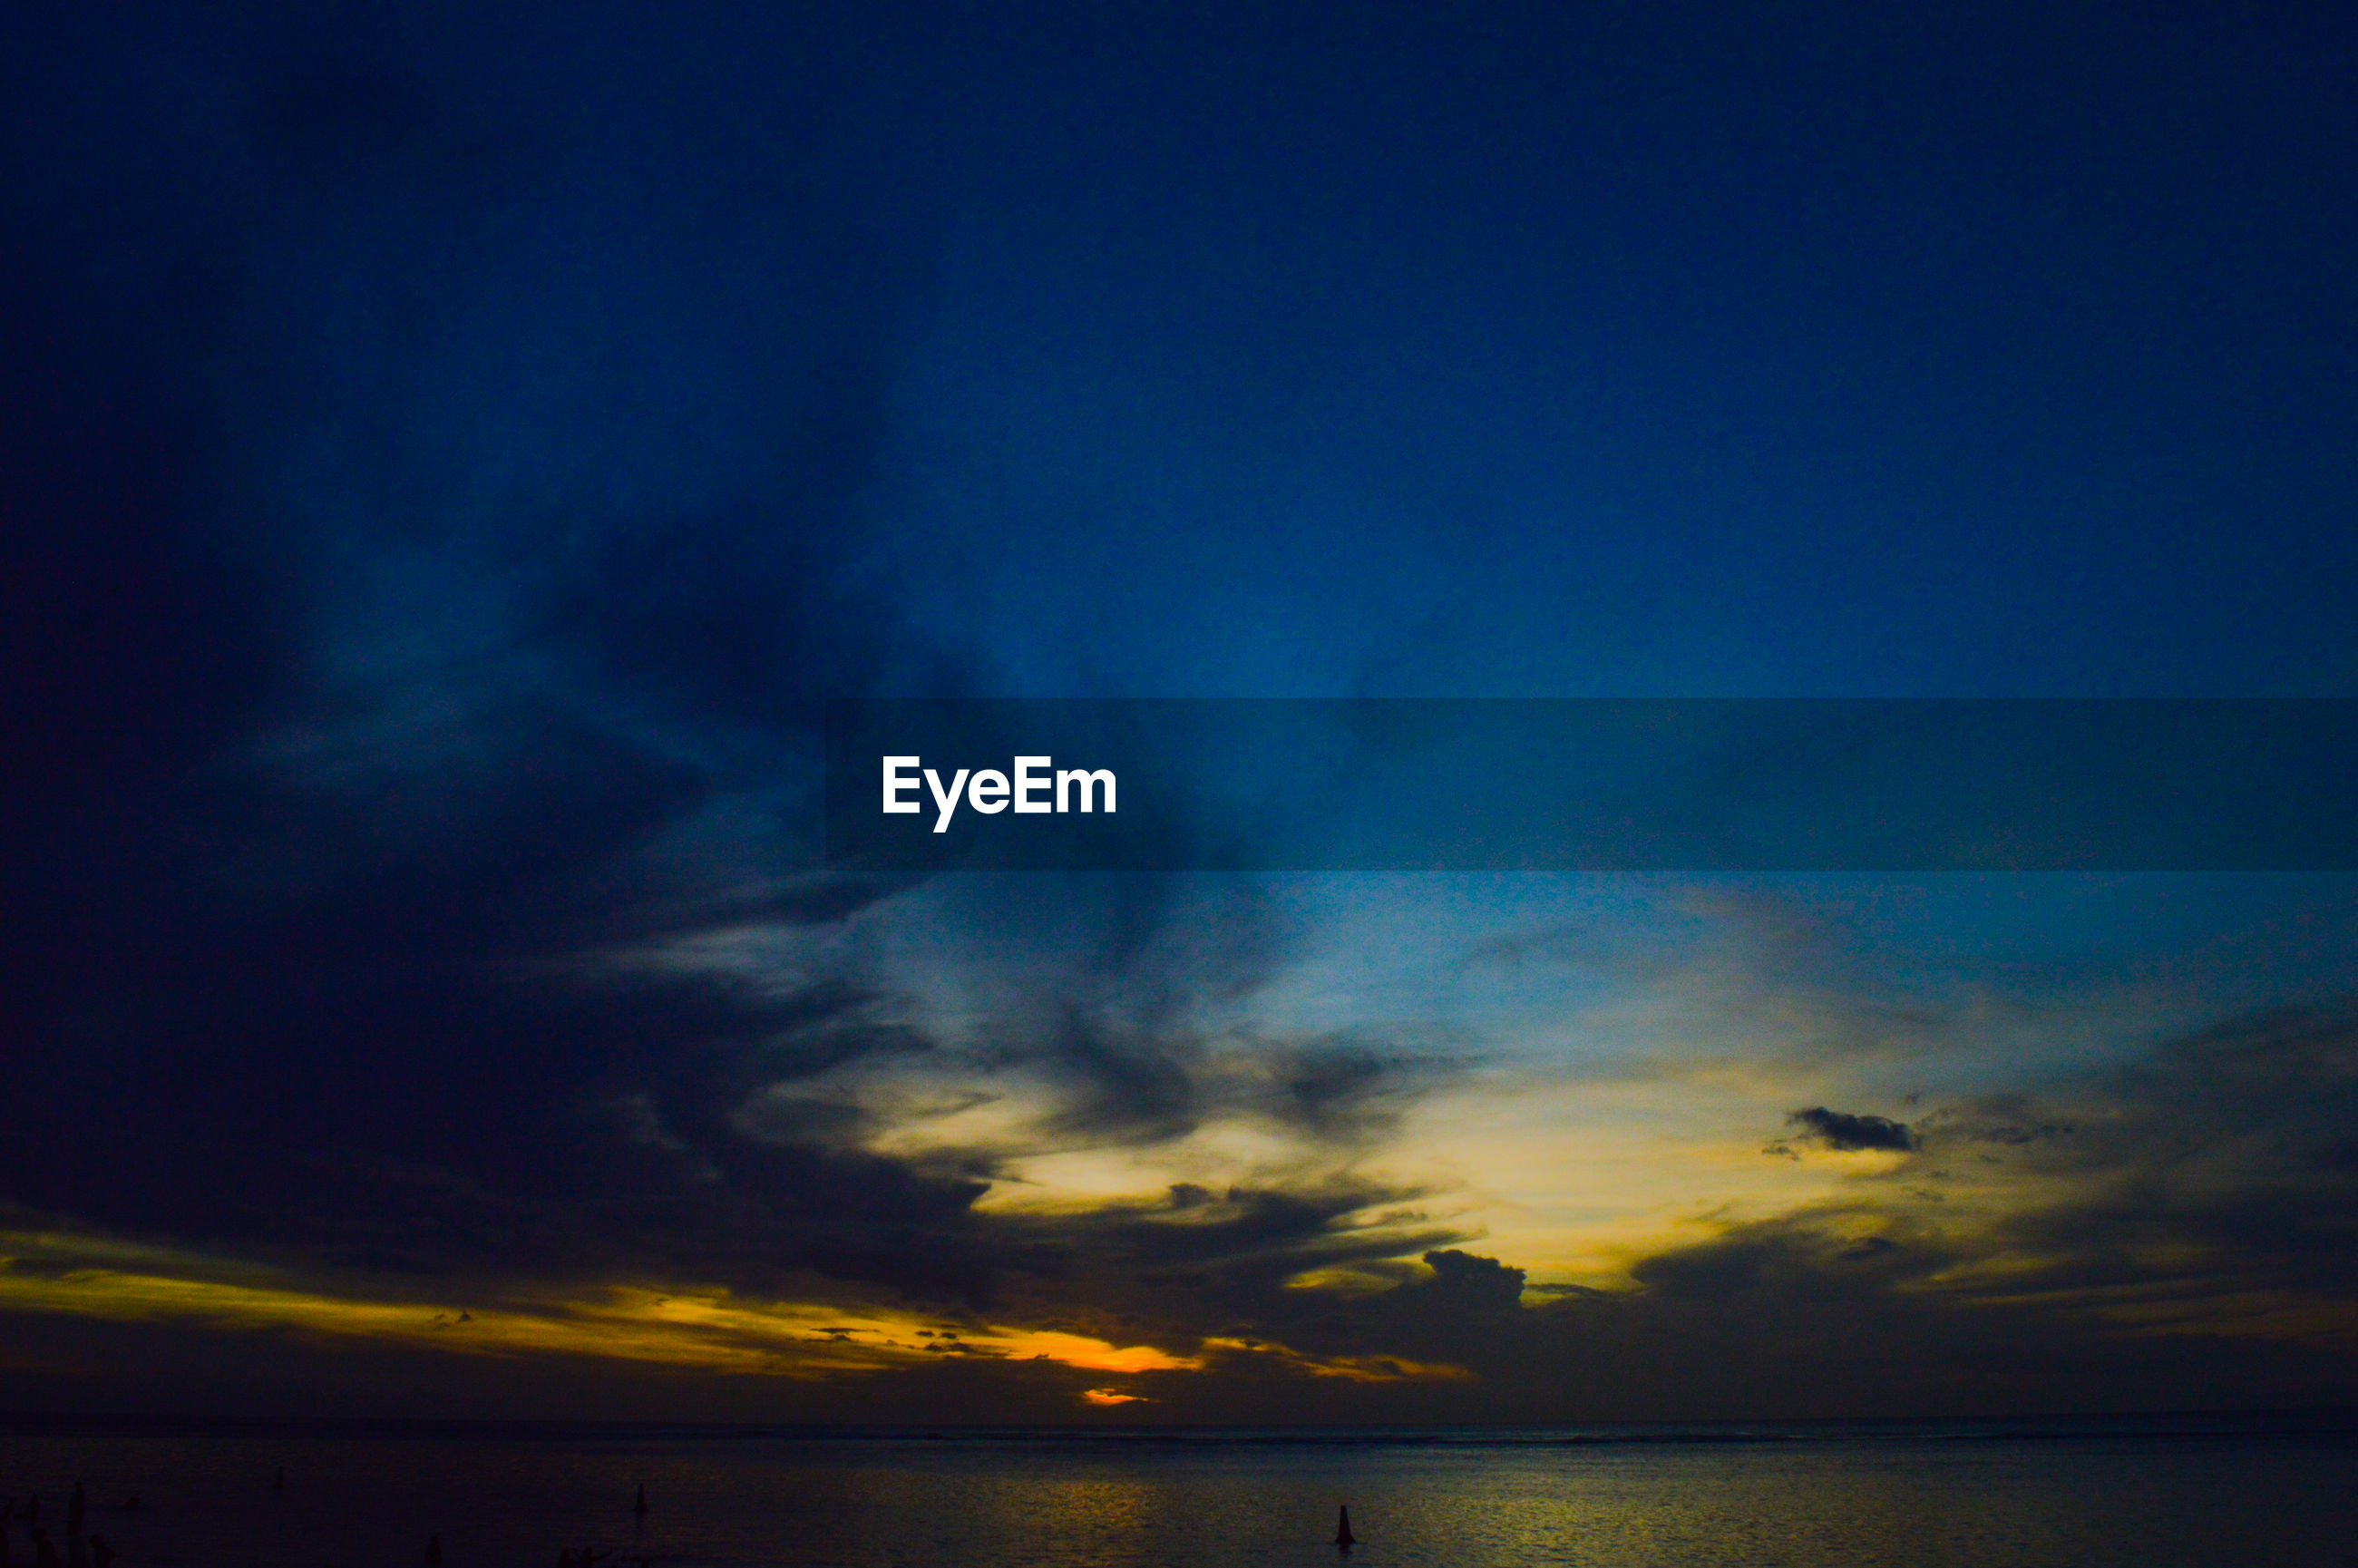 scenics, tranquil scene, sunset, tranquility, beauty in nature, sky, water, sea, nature, idyllic, silhouette, waterfront, blue, horizon over water, dusk, cloud - sky, orange color, calm, cloud, dramatic sky